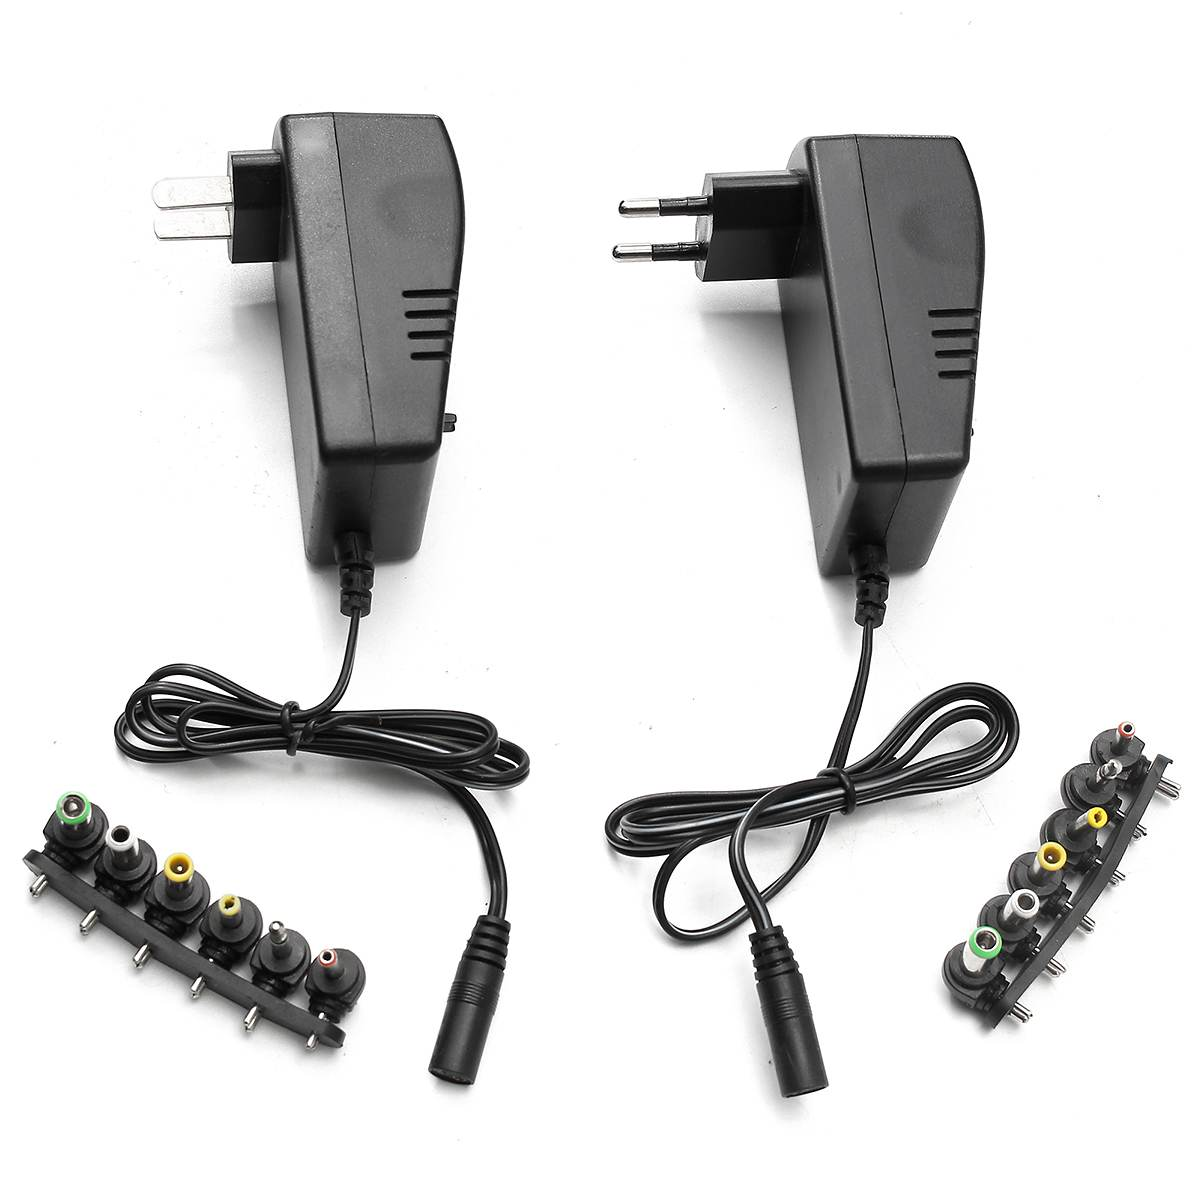 100- 240V AC 50-60Hz Multi Voltage <font><b>3v</b></font> 4.5v 5v 6v 9v 12v DC Adjustable Power <font><b>Adapter</b></font> Universal Charger Supply Converter 6 Plugs image